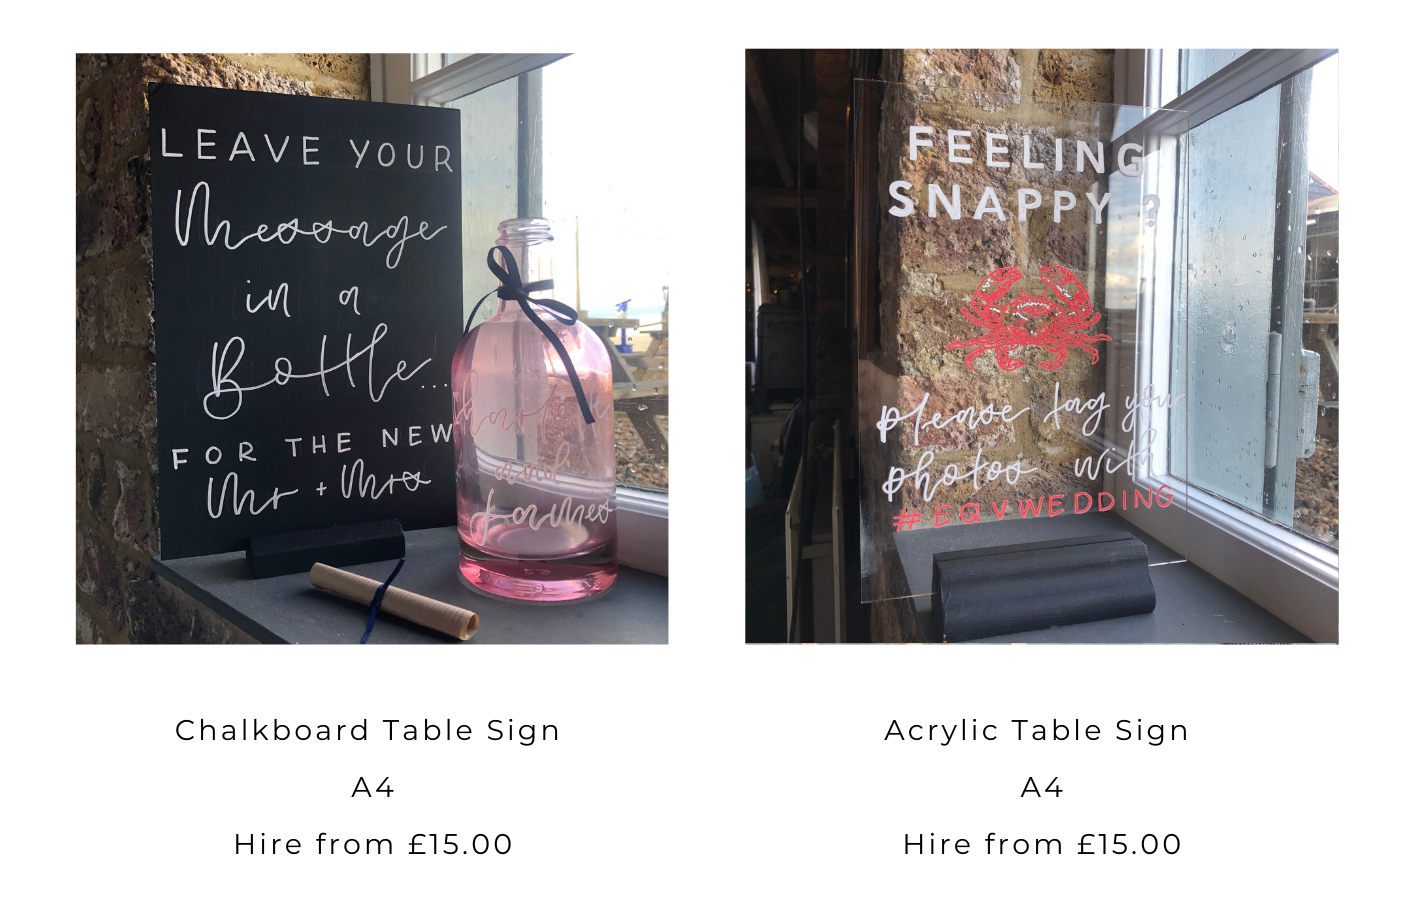 Signage Catologue for Bespoke Calligraphy for Weddings and Events